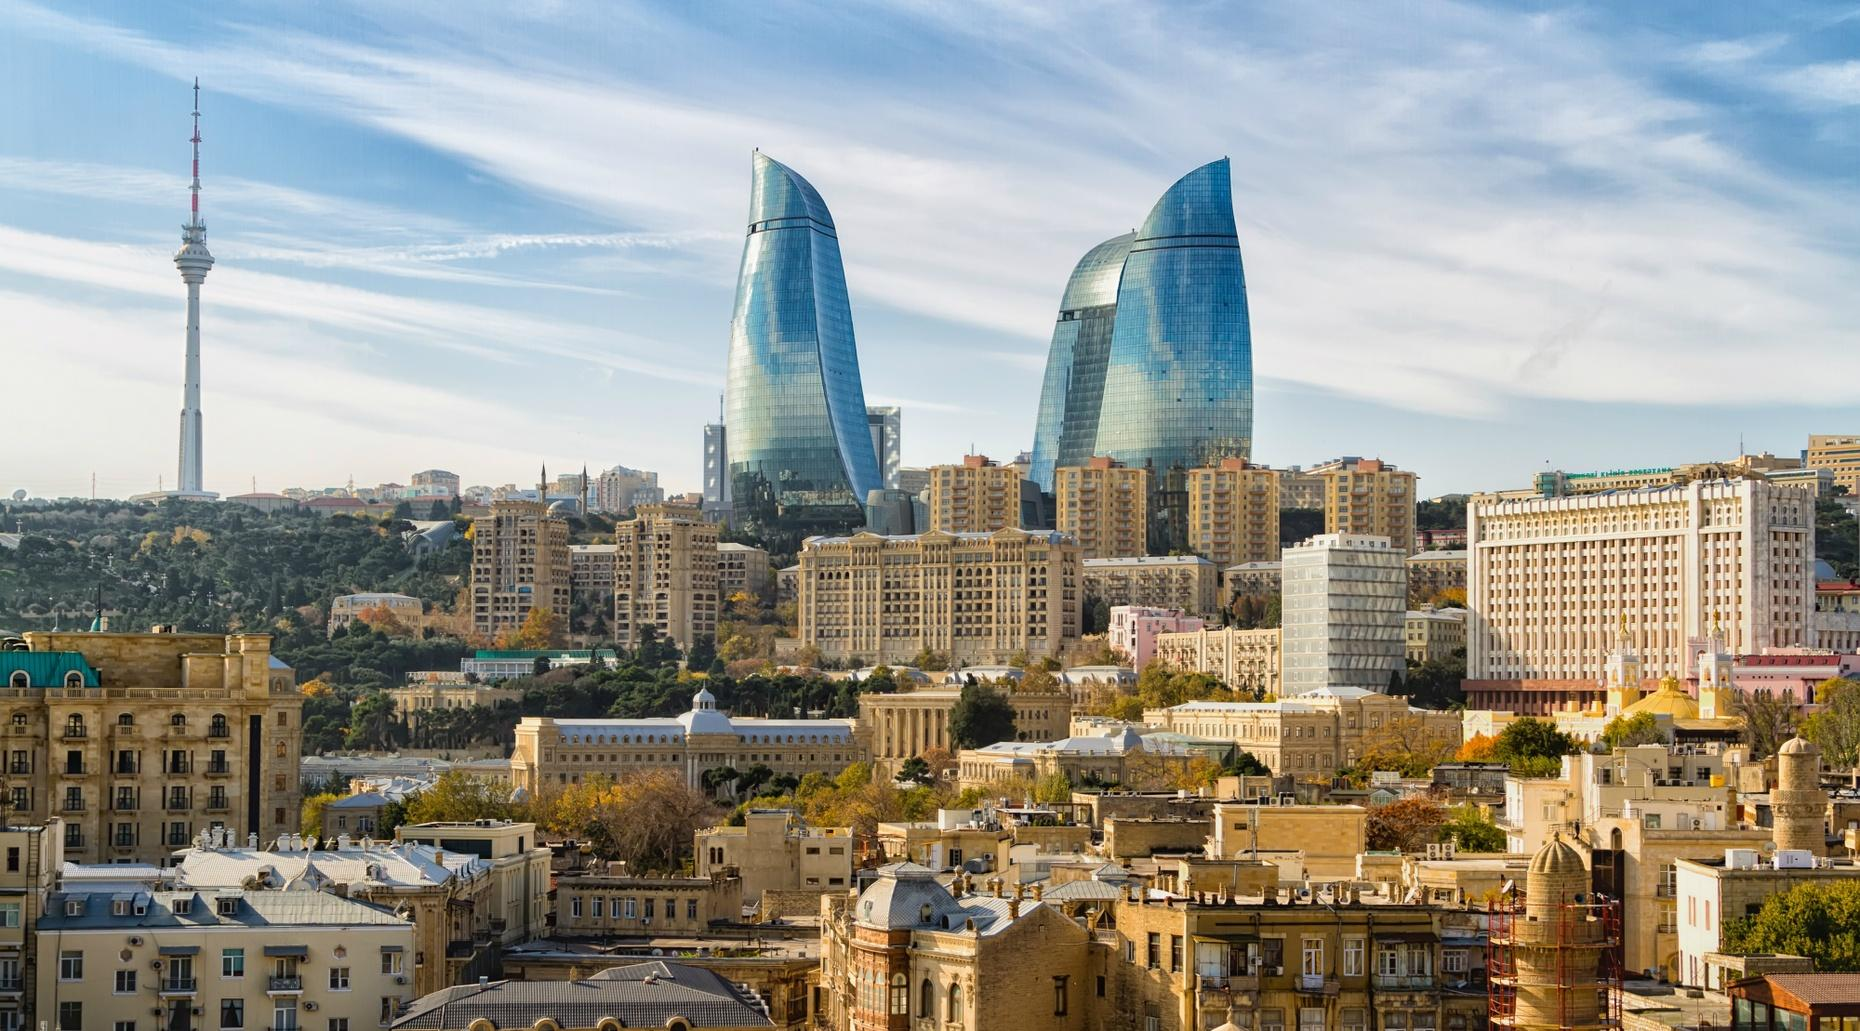 Guided Day Tour of Baku